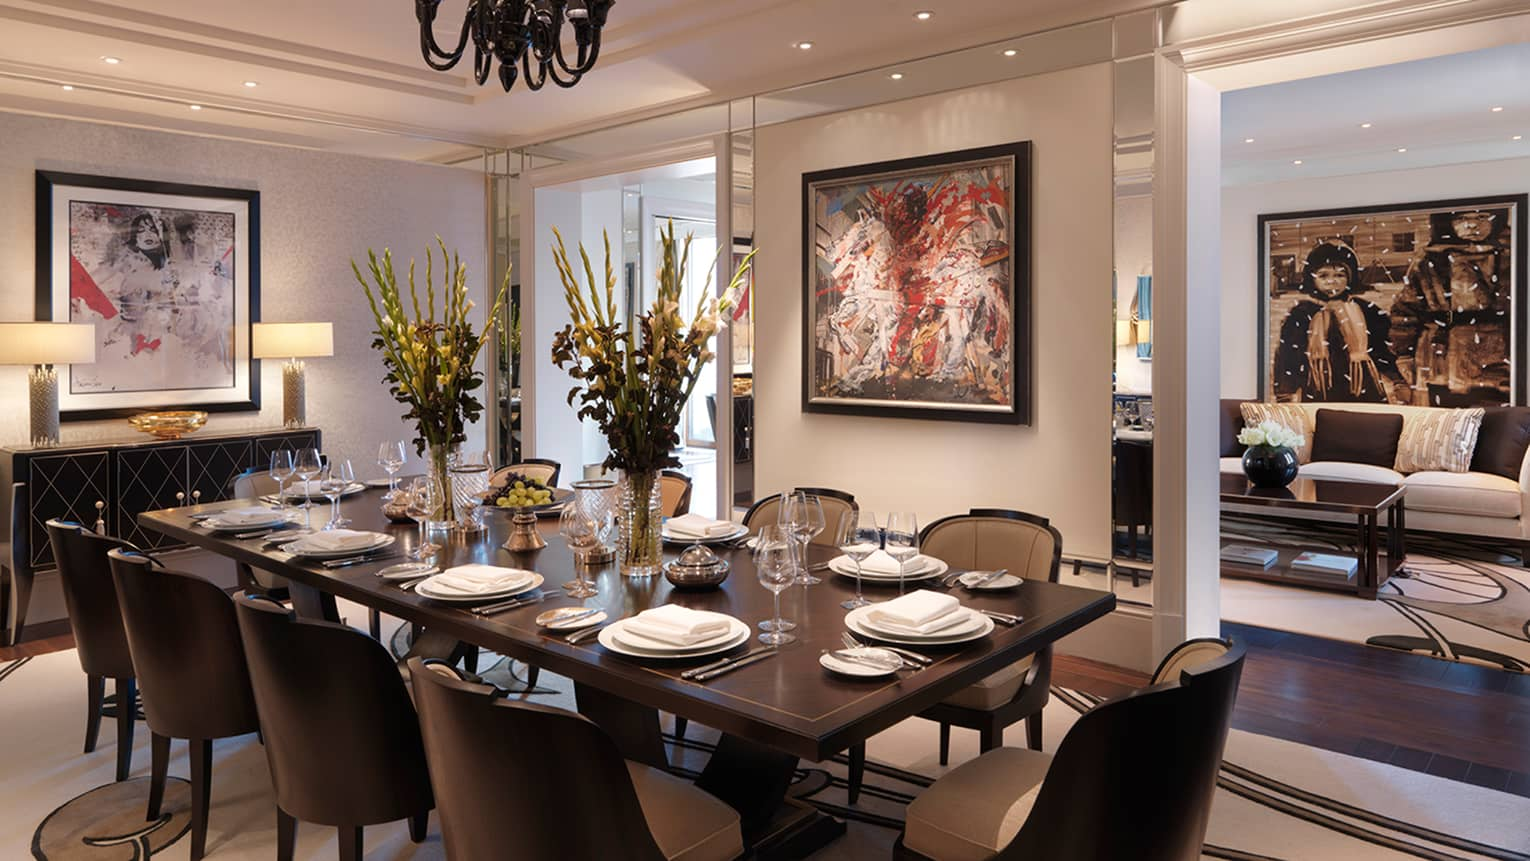 In-room dining table with seating for 10, tall flower bouquets in crystal vases and modern paintings on wall